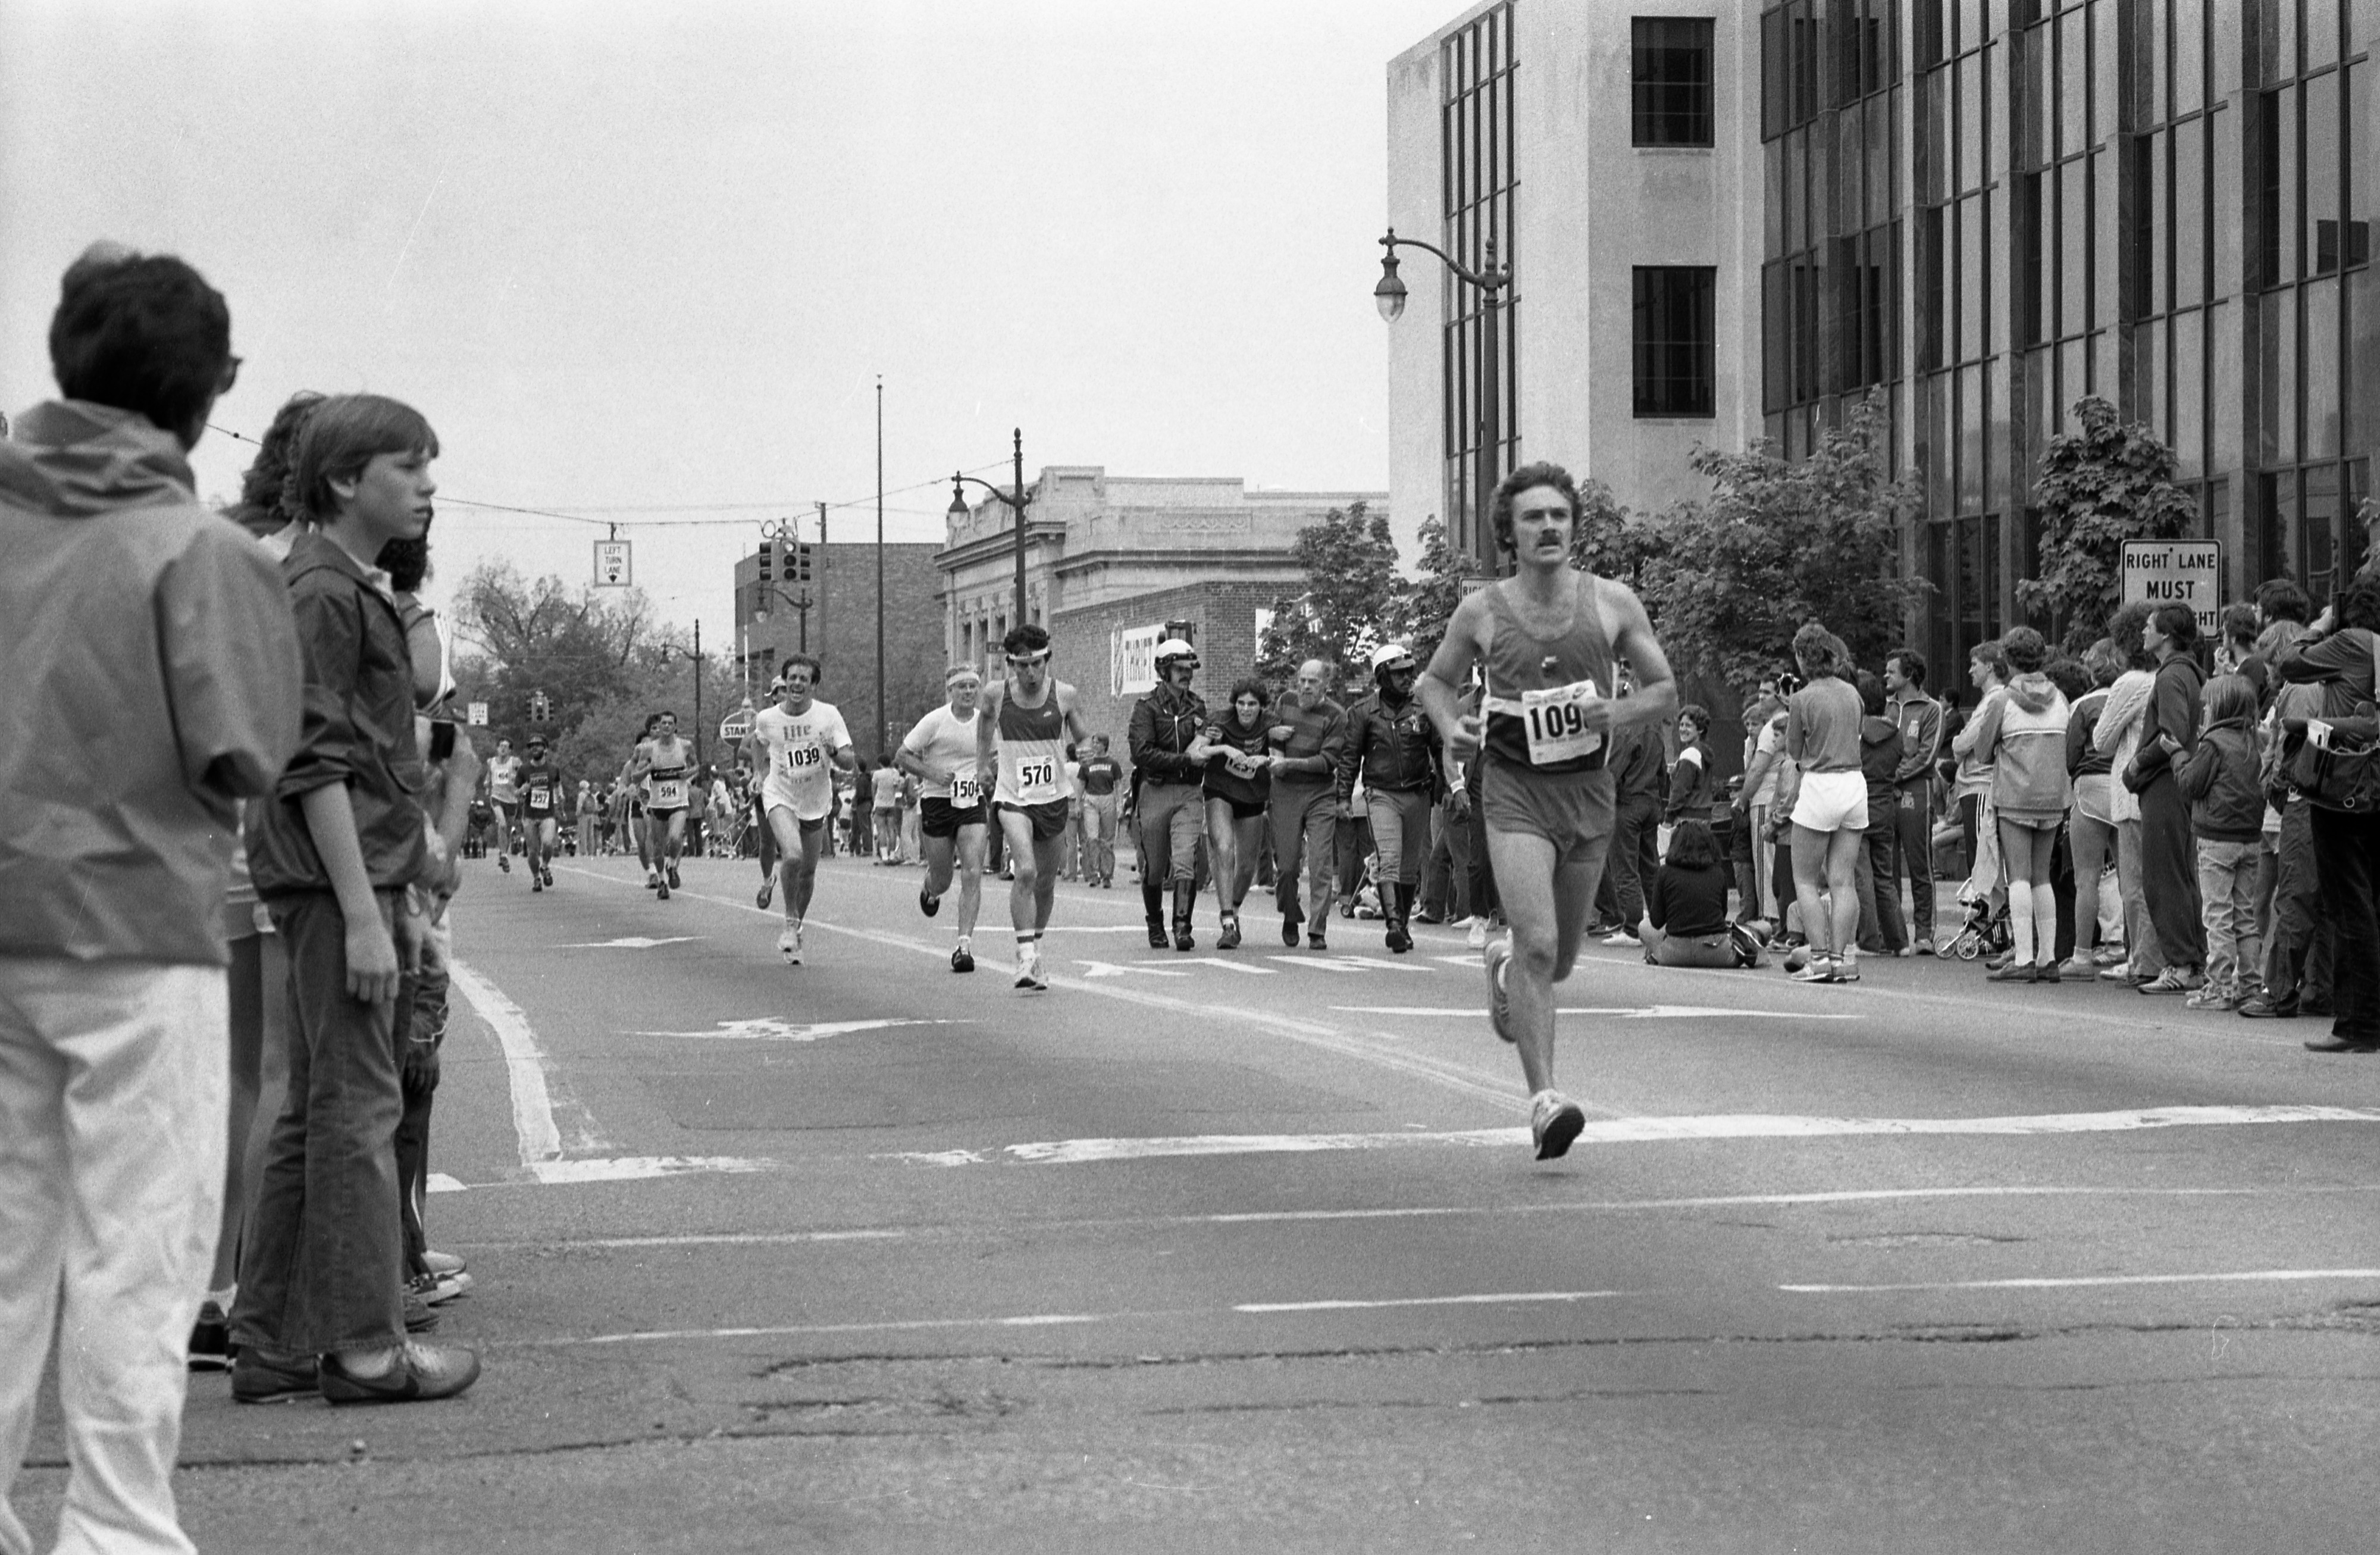 Runners In The Dexter-Ann Arbor Run, May 29, 1983 image